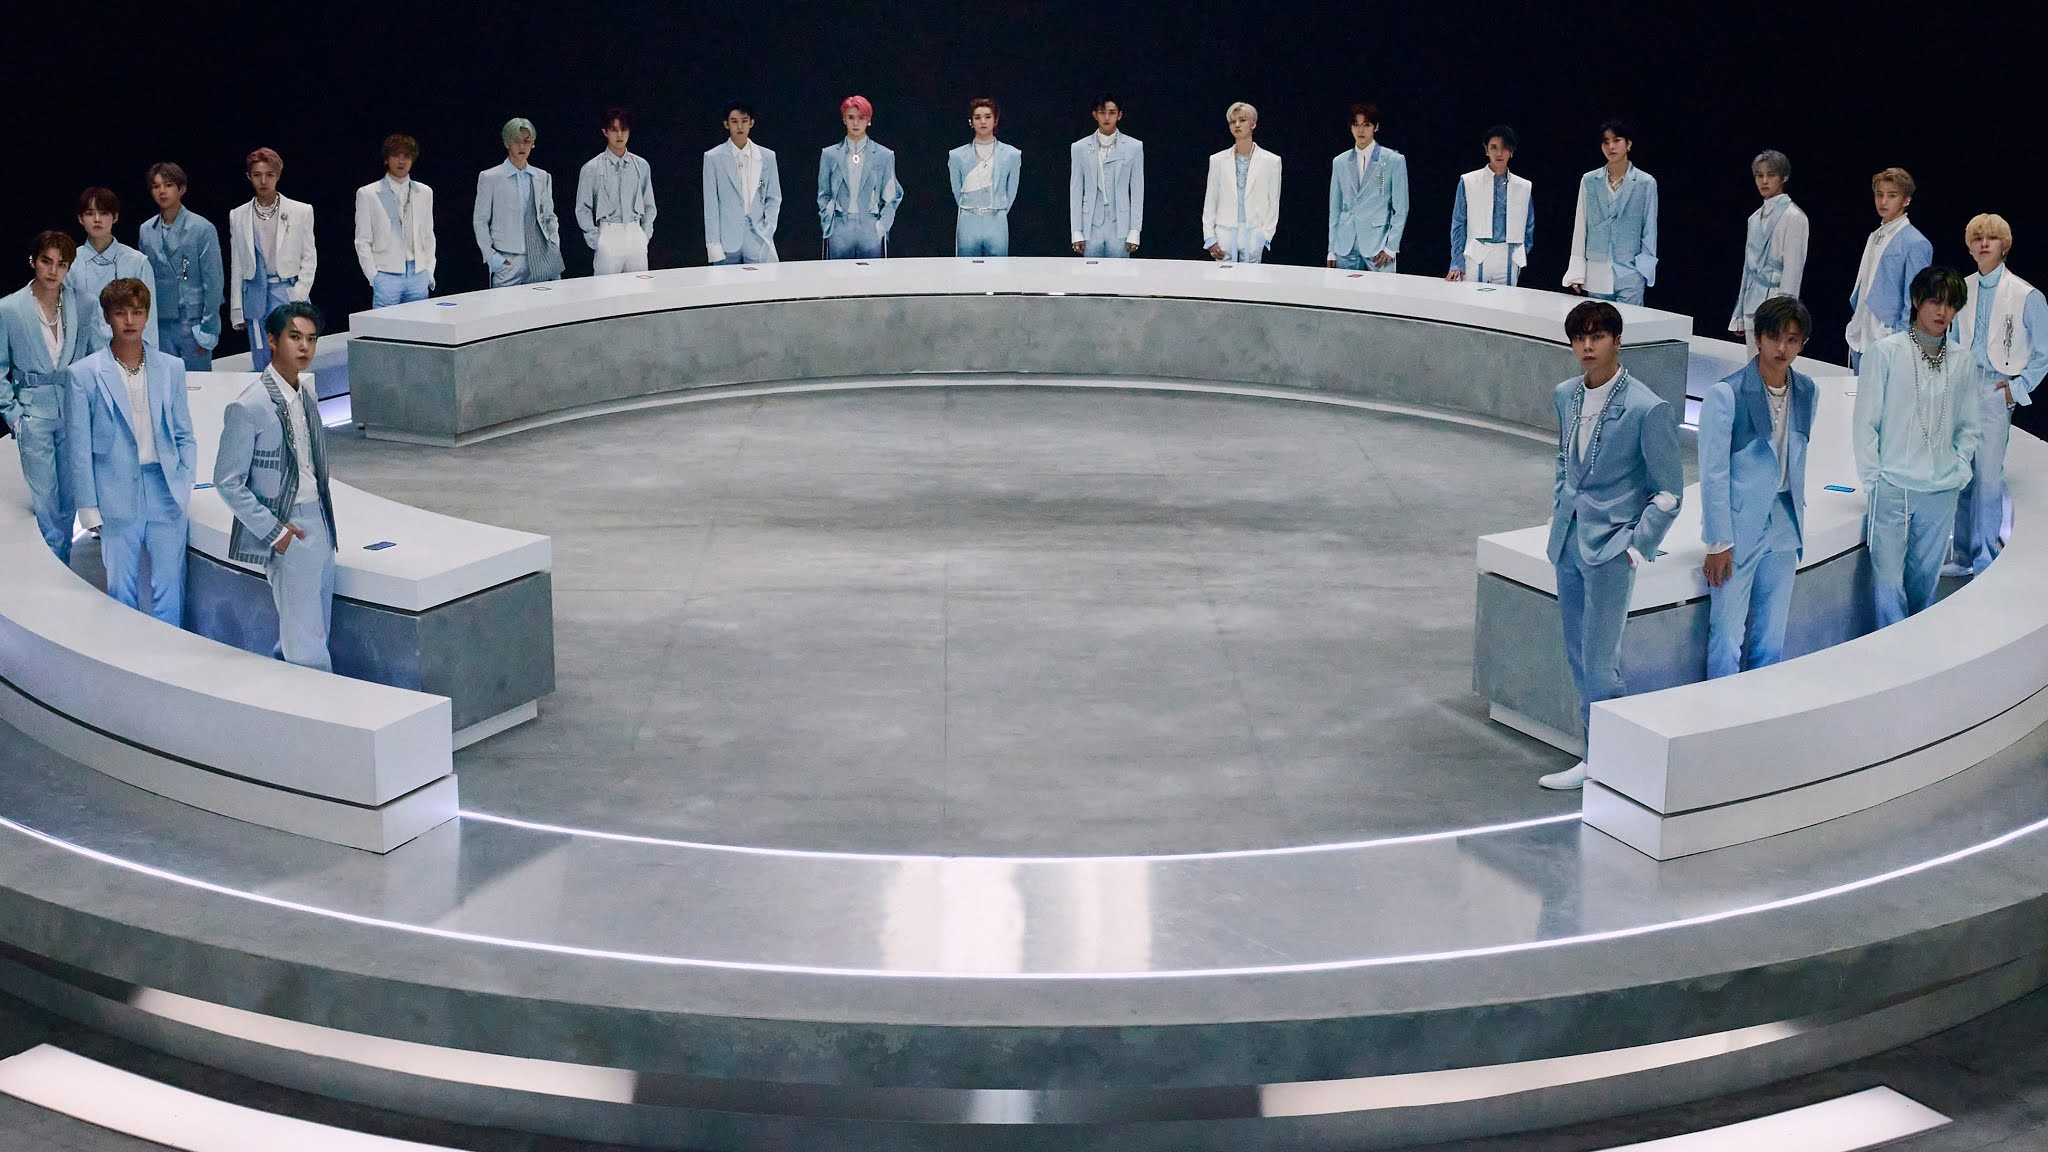 Make New Records, NCT 2020 New Album 'RESONANCE Pt. 1' Sold Up to 1.4 Million Pieces